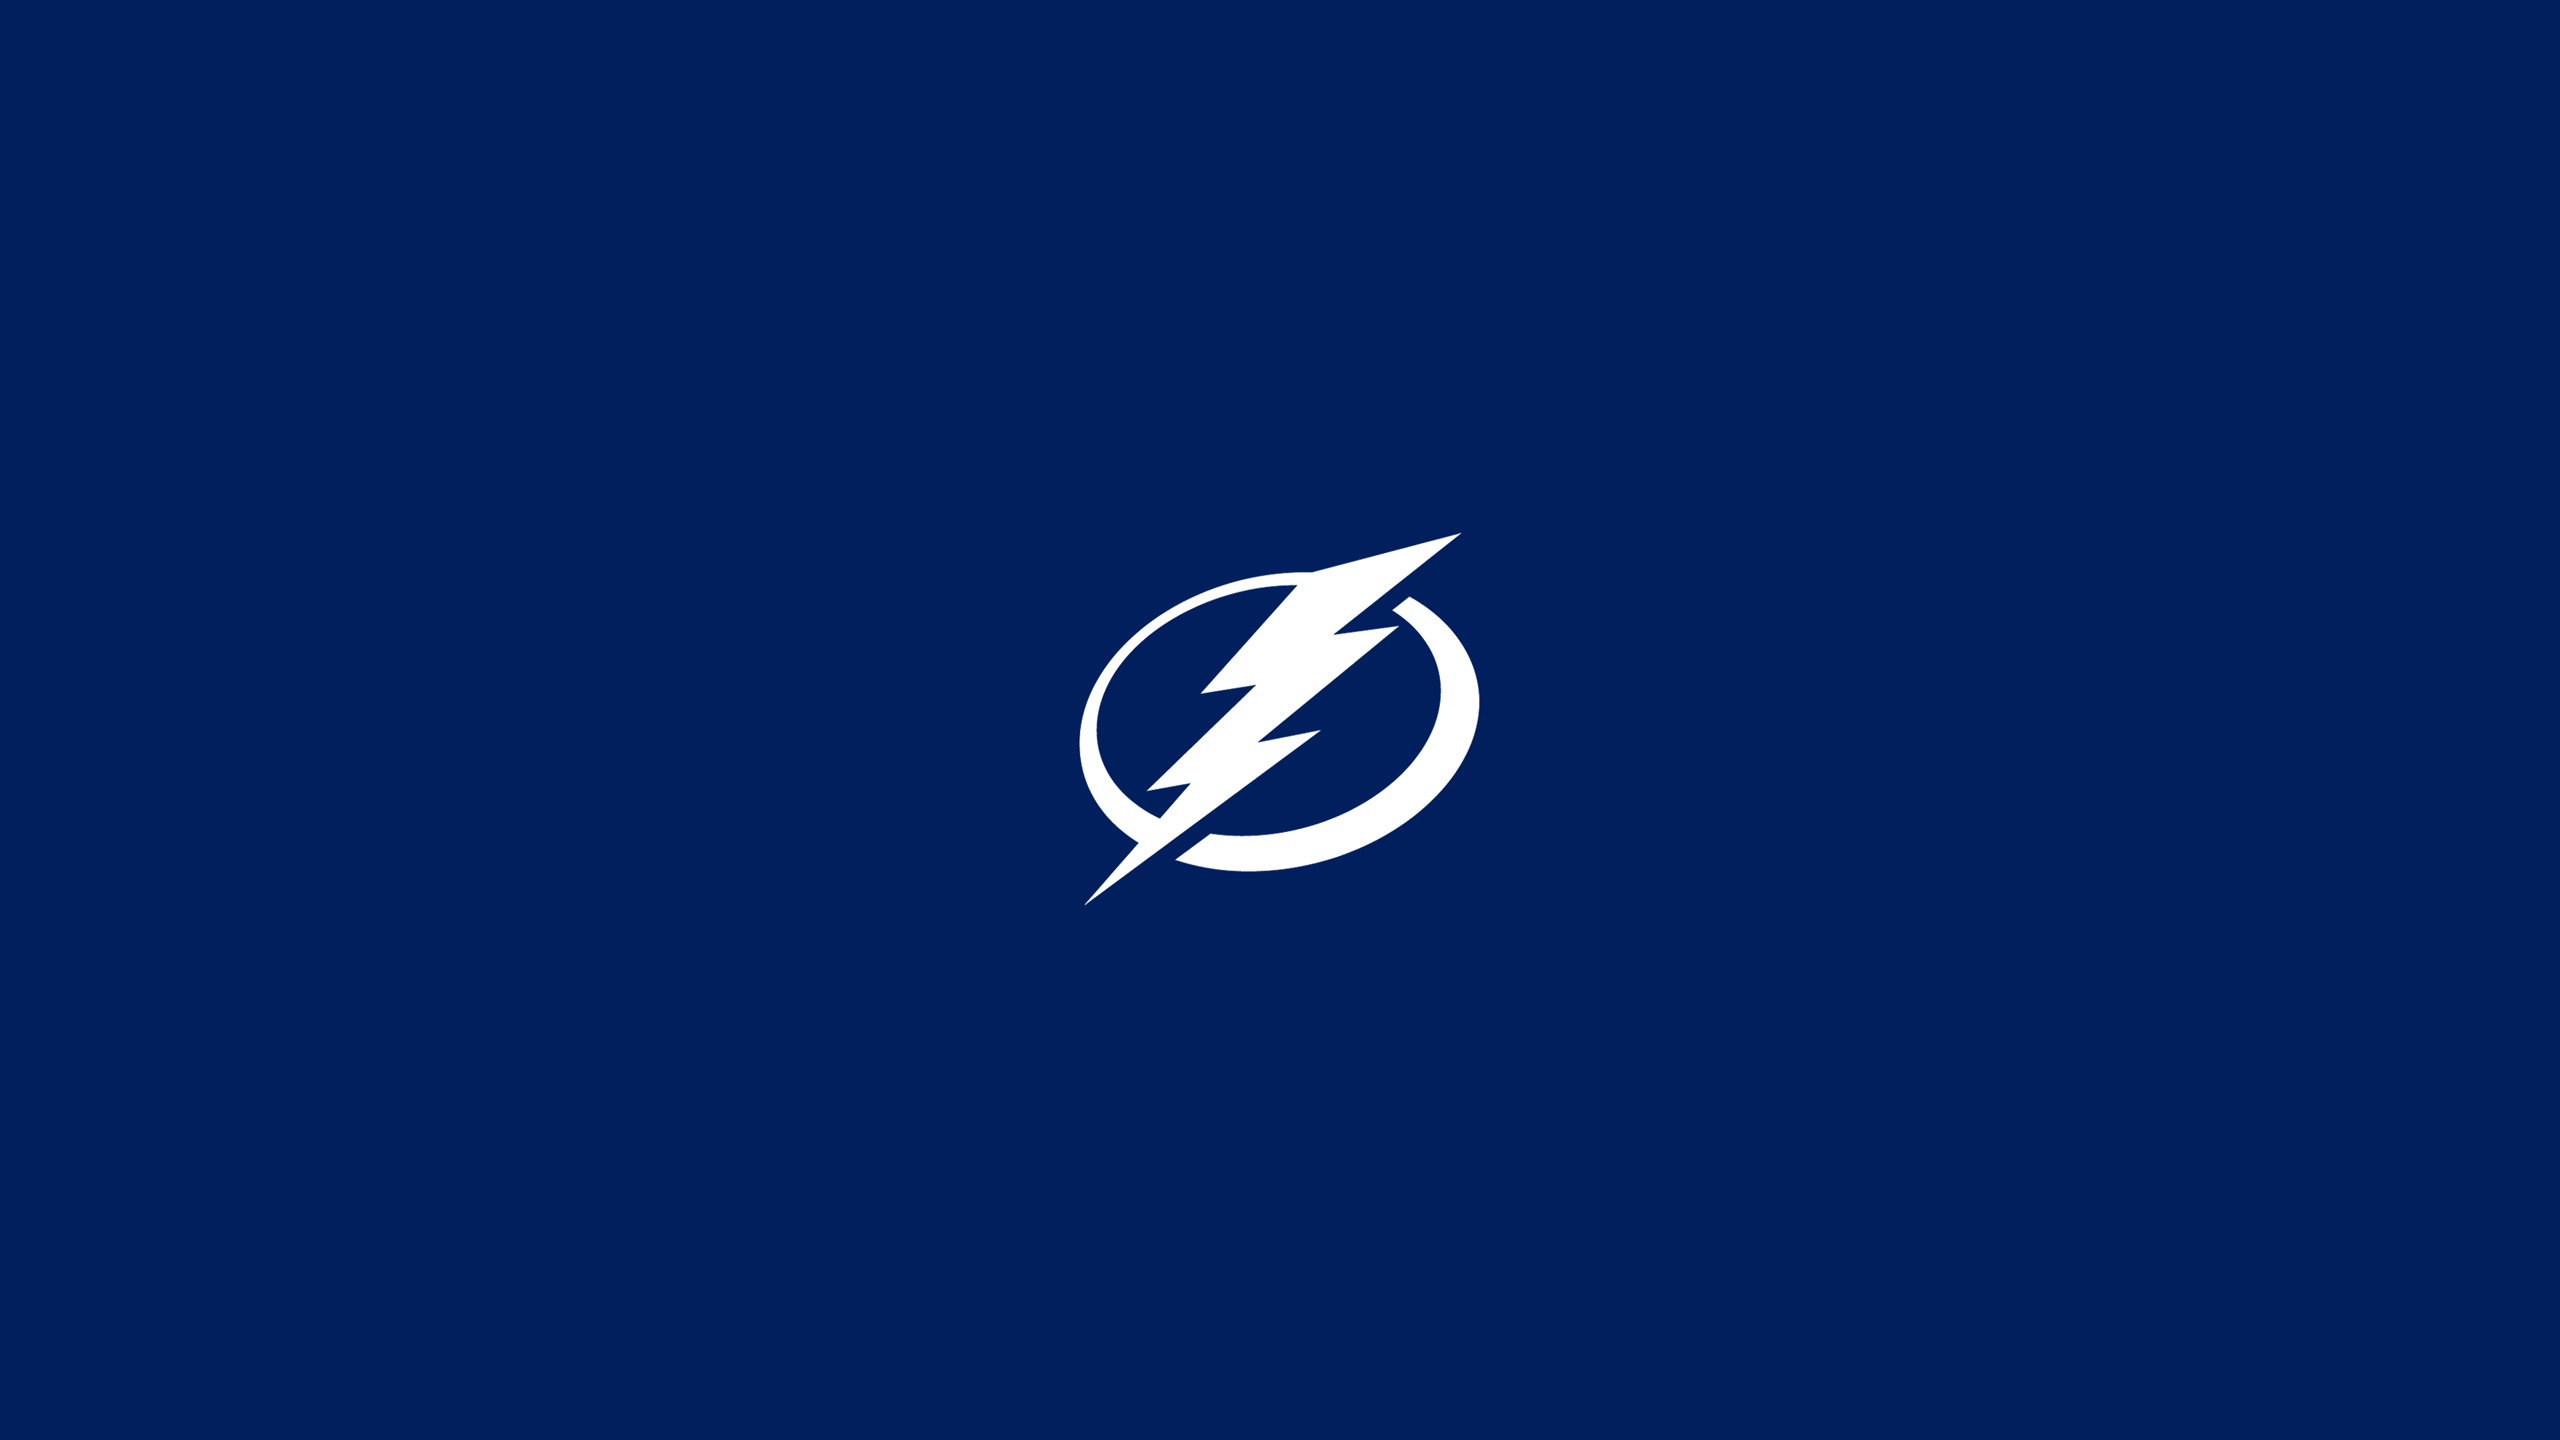 tampa bay lightning tampa bay lightning tampa bay lightning alt 2560x1440